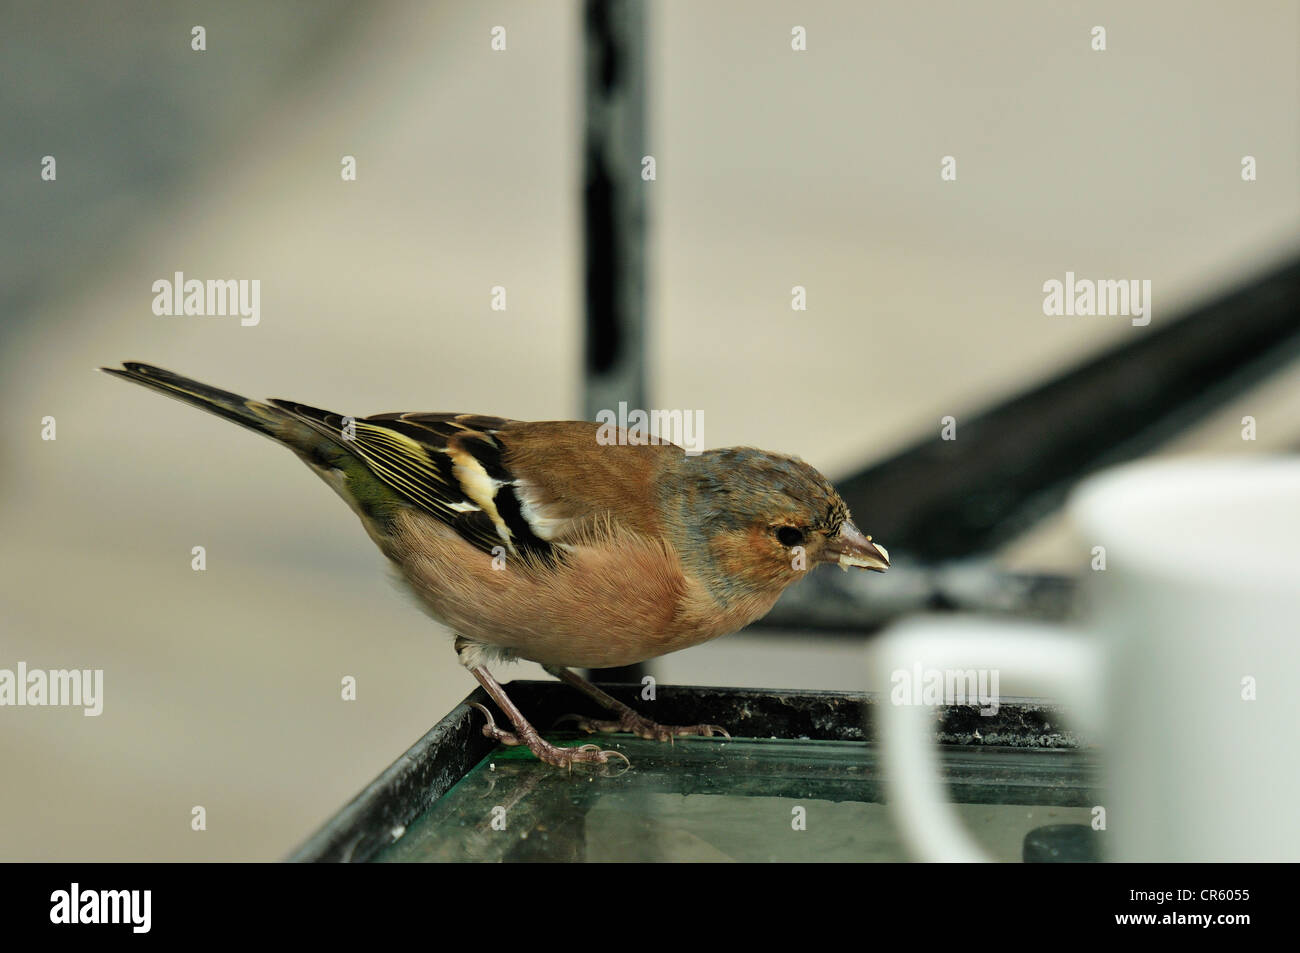 Male of Common Chaffinch Frigilla coelebs, Fringillidae, Glenveagh Castle, Glenveagh National Park, Donegal, Irlanda - Stock Image